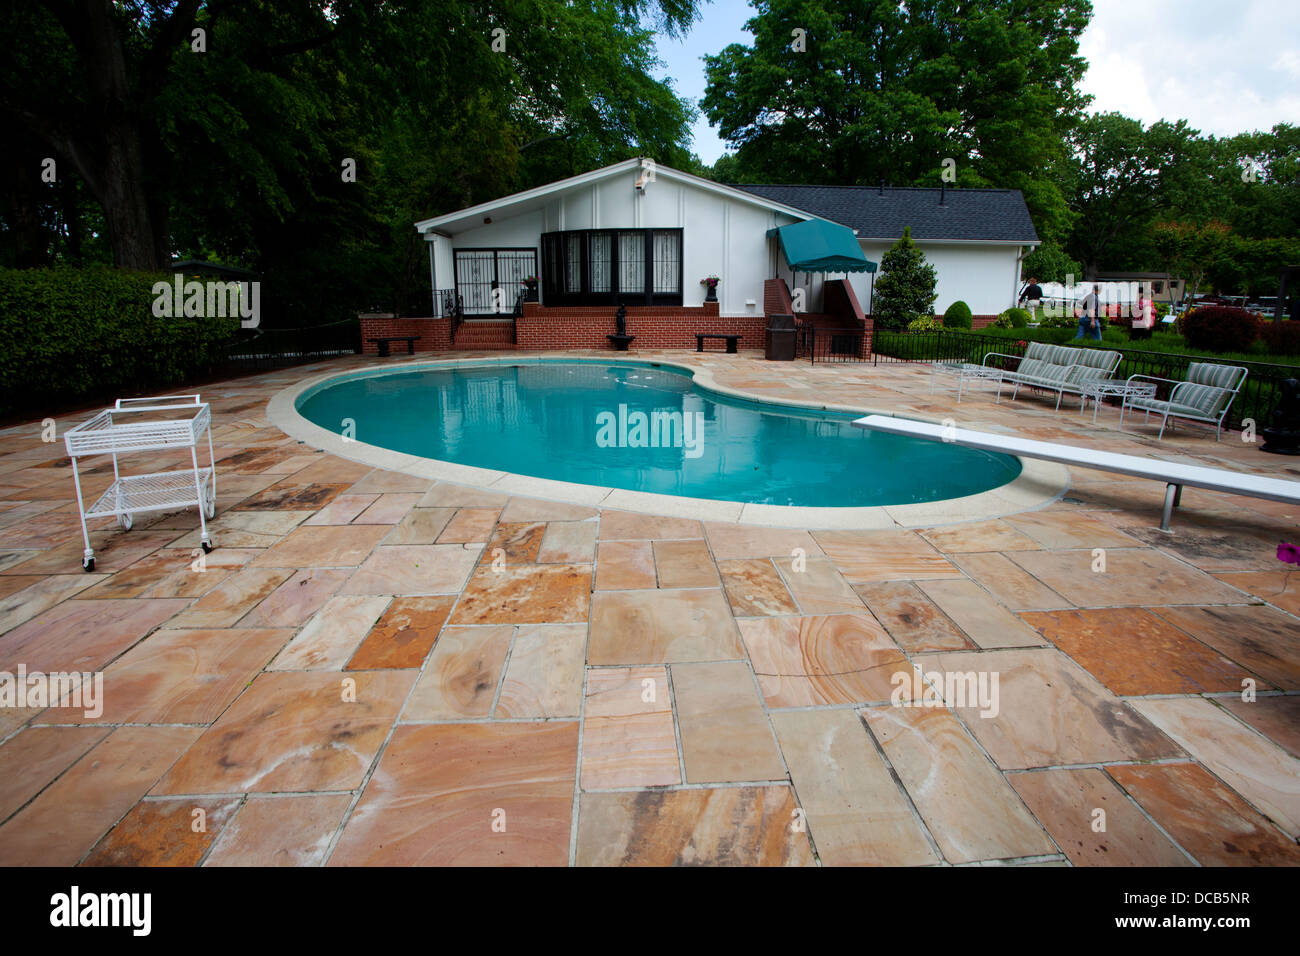 The swimming Pool at Graceland the home of Elvis Presley in ...